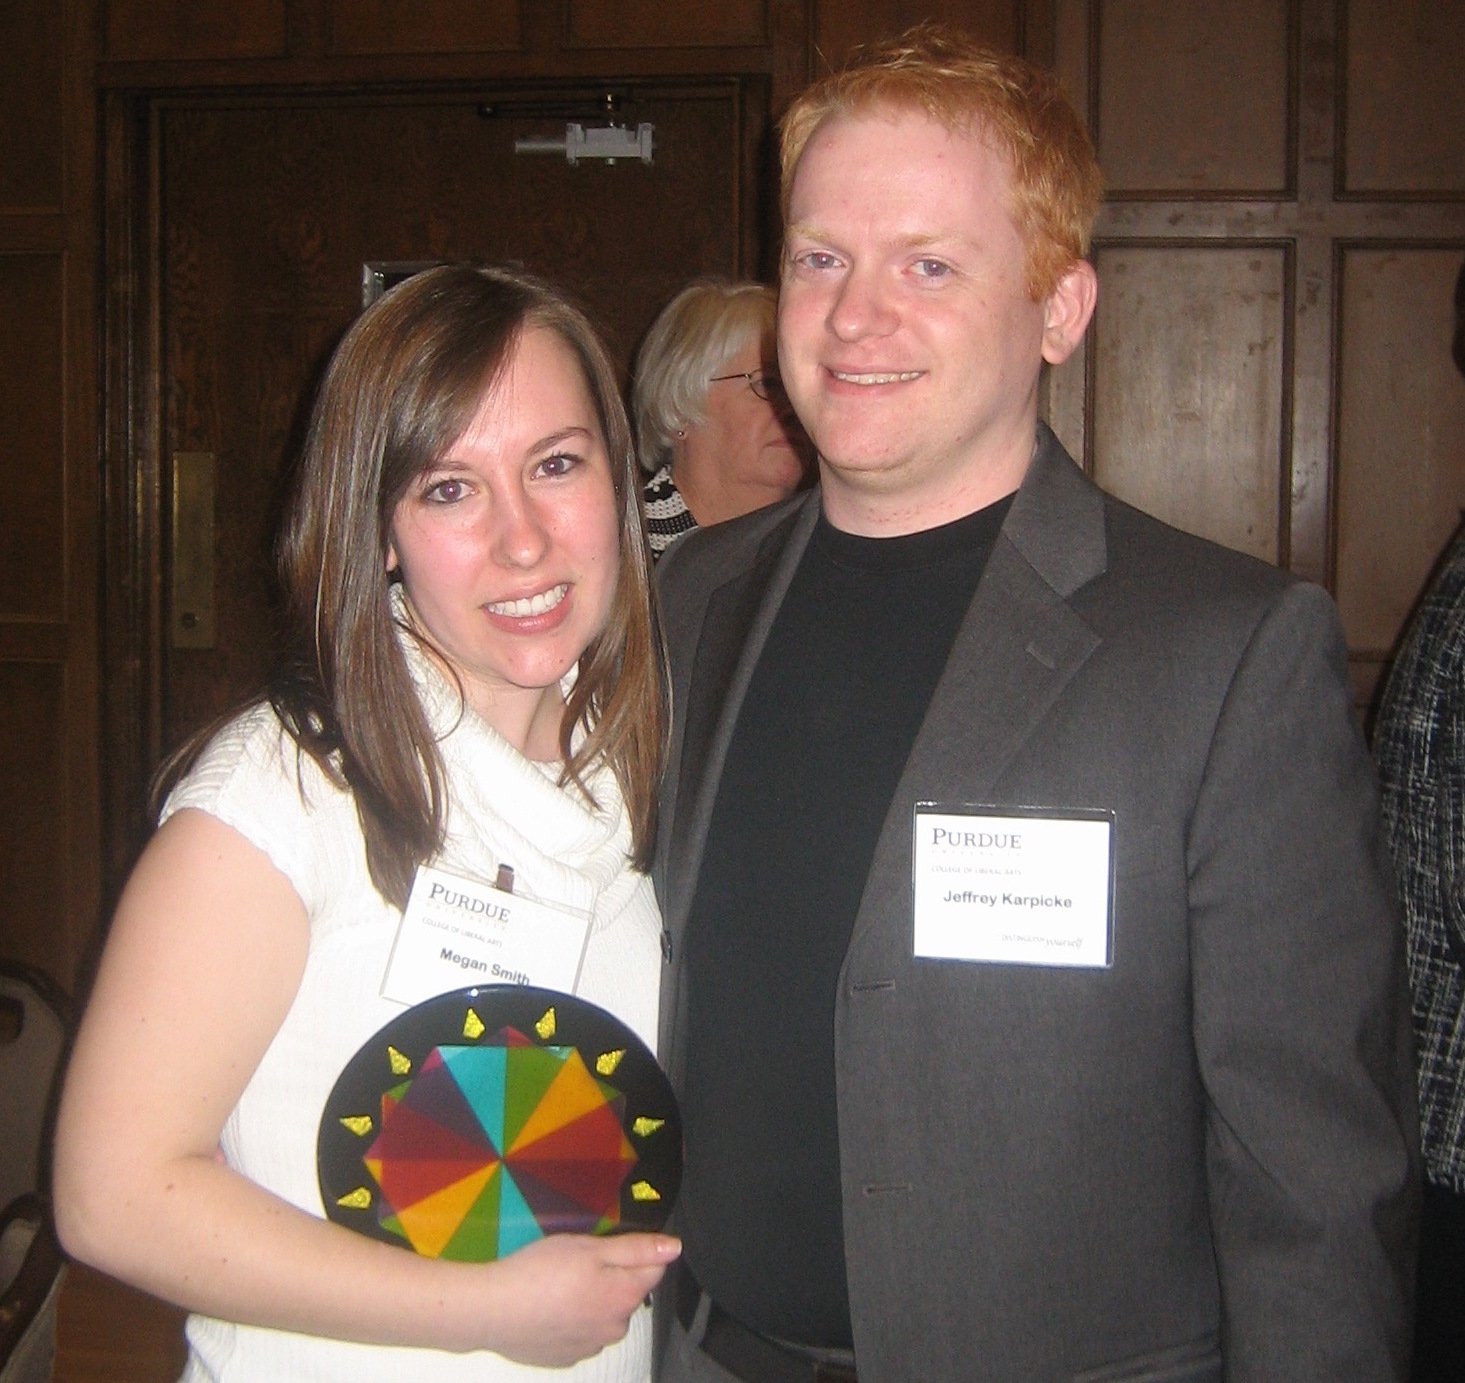 Dr. Jeff Karpicke and I, after I won a Purdue award for my research in his lab.